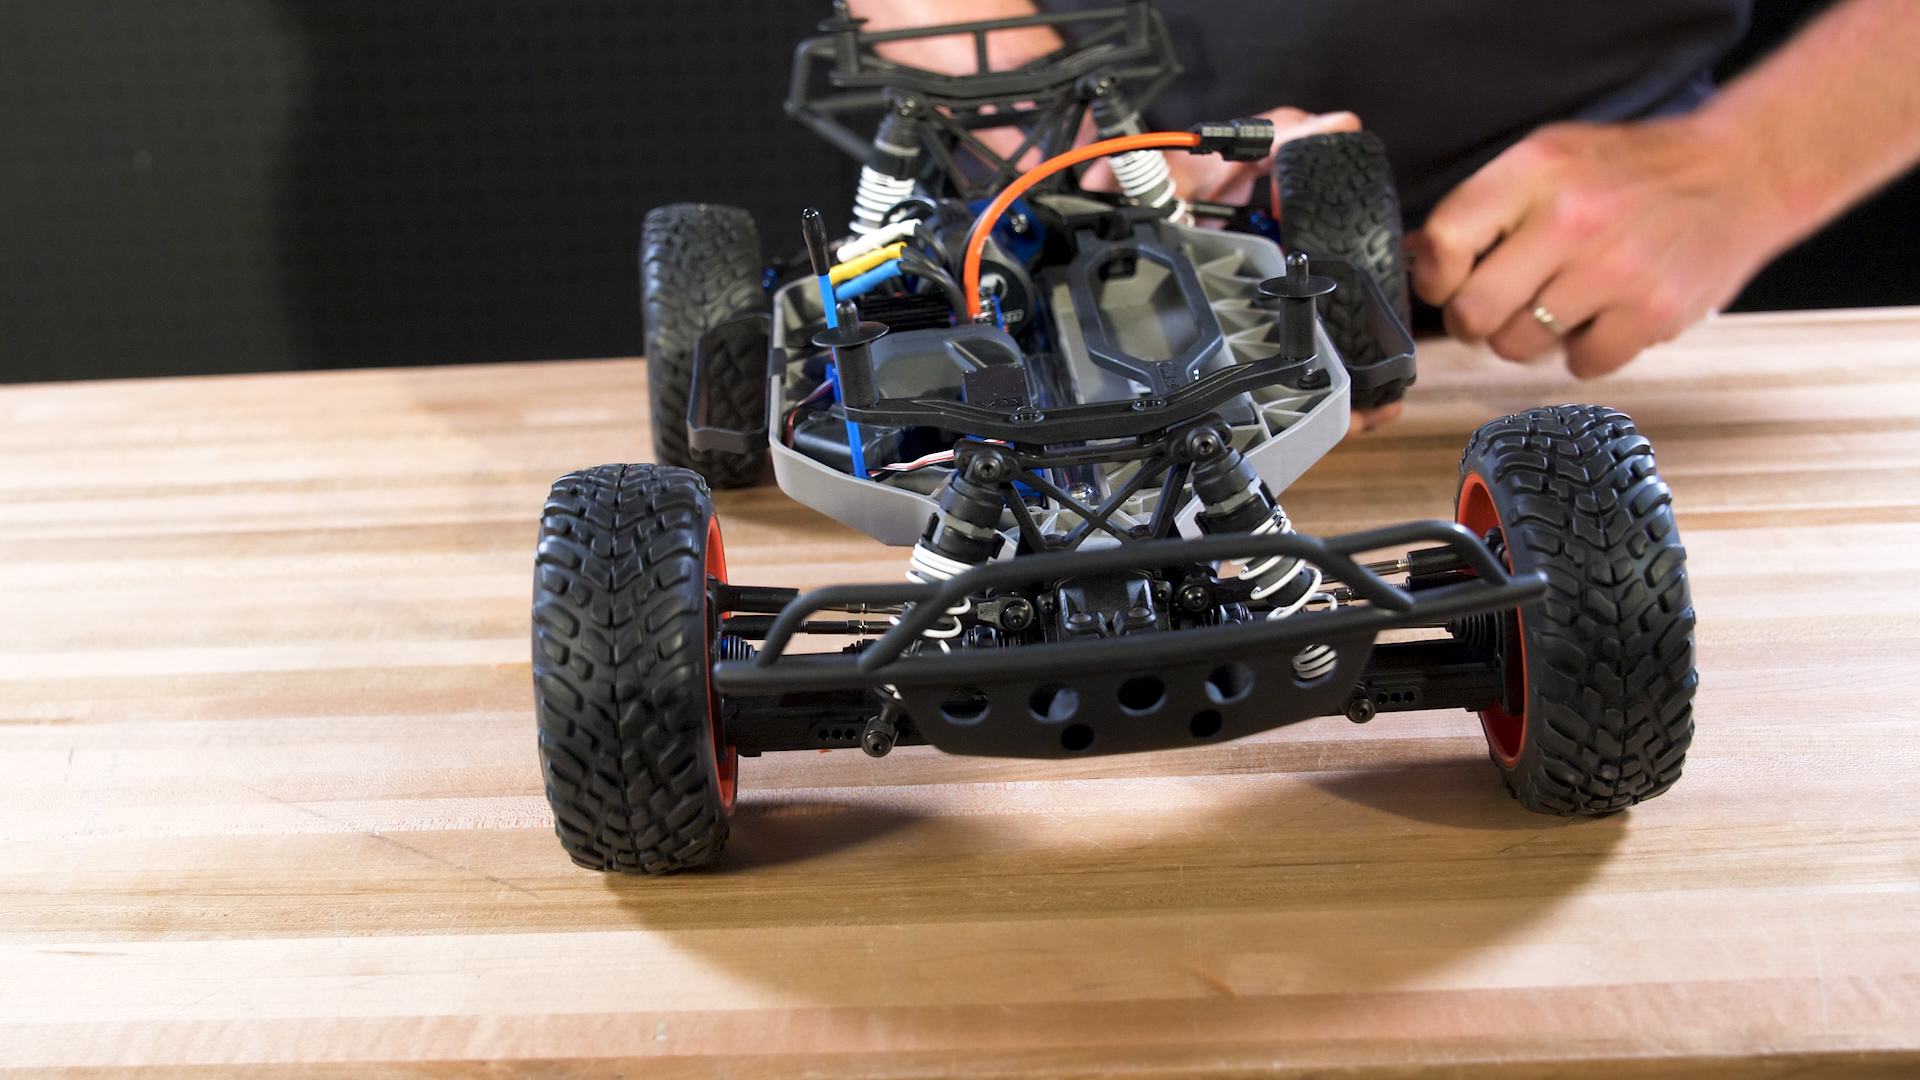 Slash 4x4 Upgrades Driveshaft Upgrade For Traxxas Models Thread Stampede Vxl Press Release And Pics Reattach The Wheels